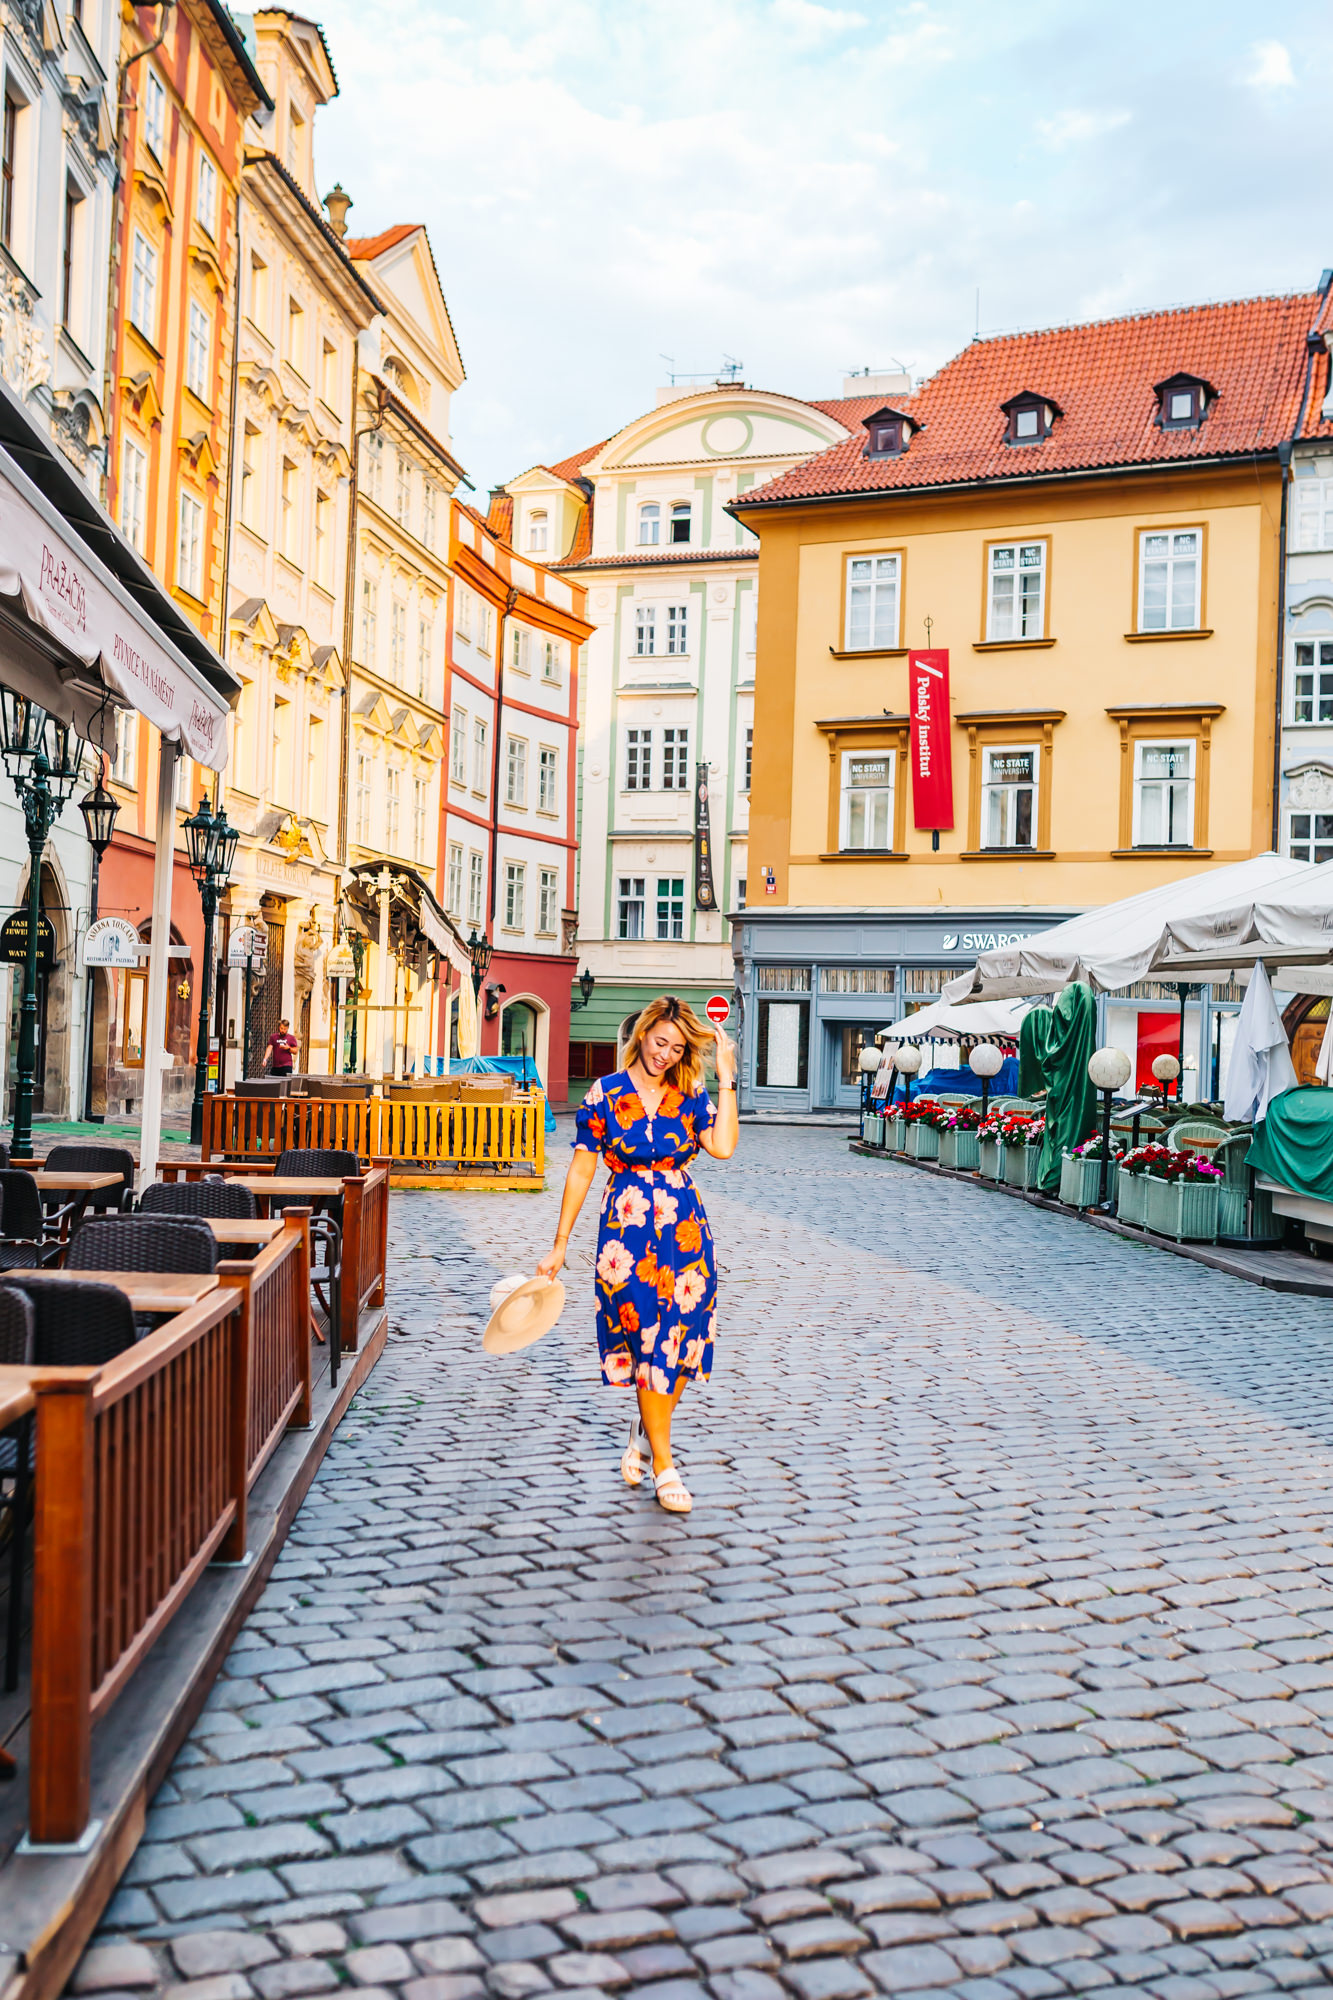 Old Town is only a 6-minute walk